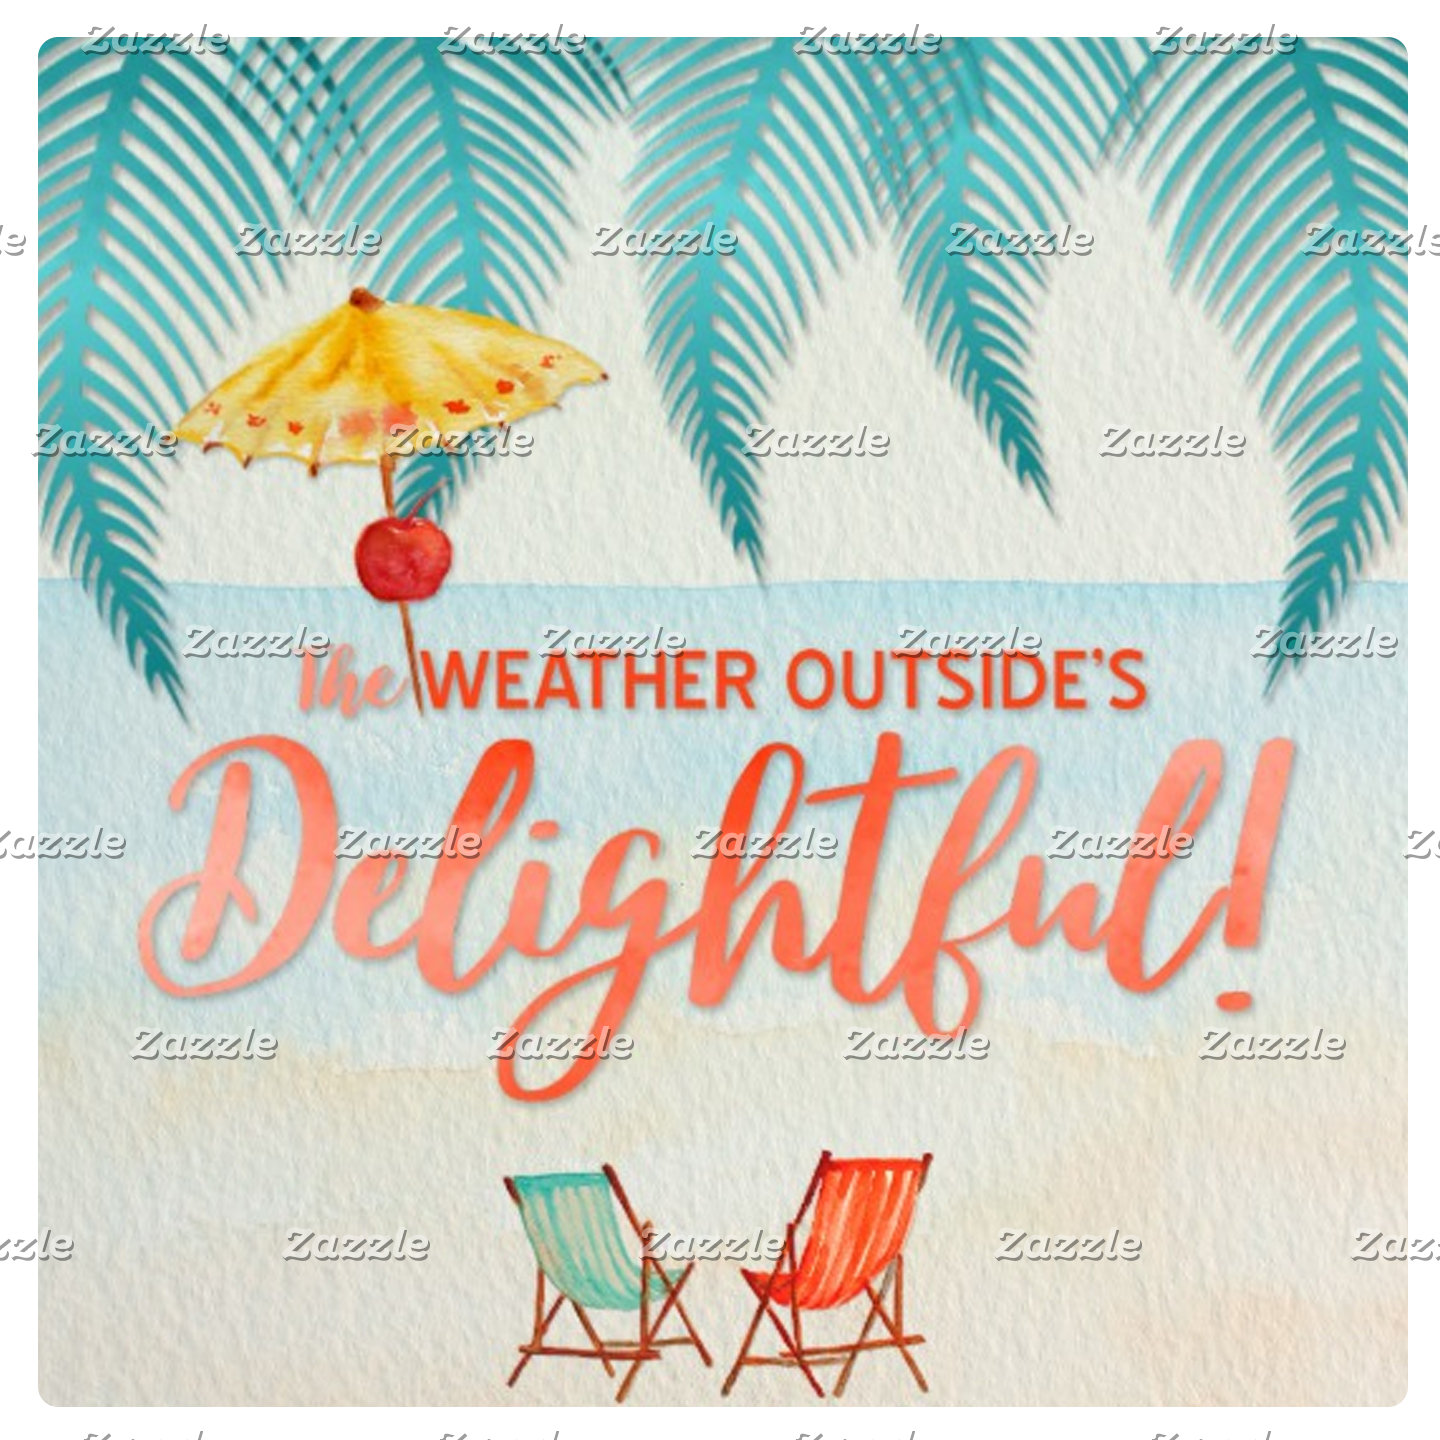 Tropical Holiday Weather Outside's Delightful!